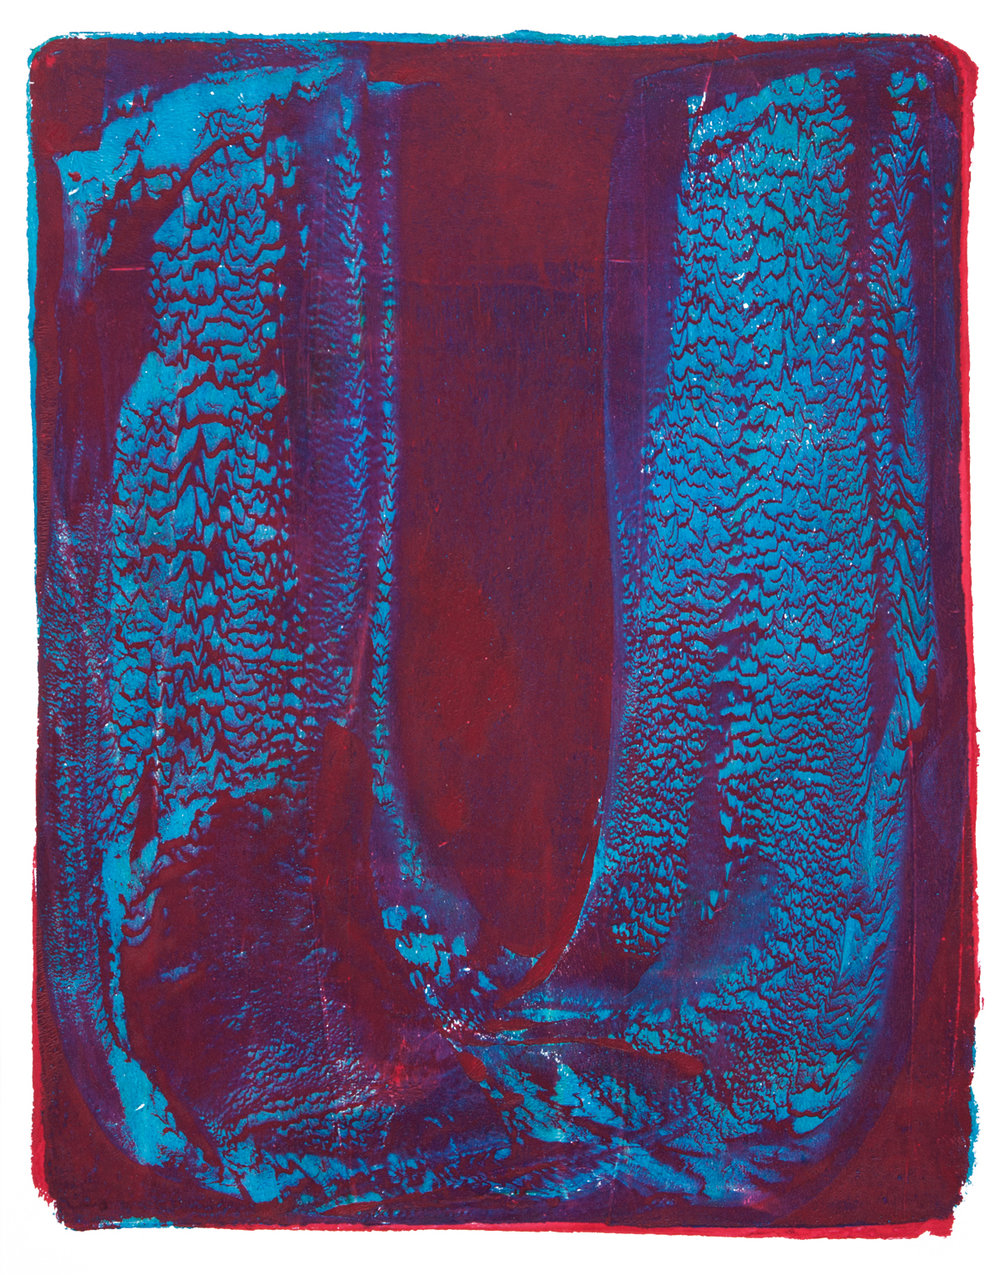 Blue U , 2016 Monotype 11 x 8.5 in.